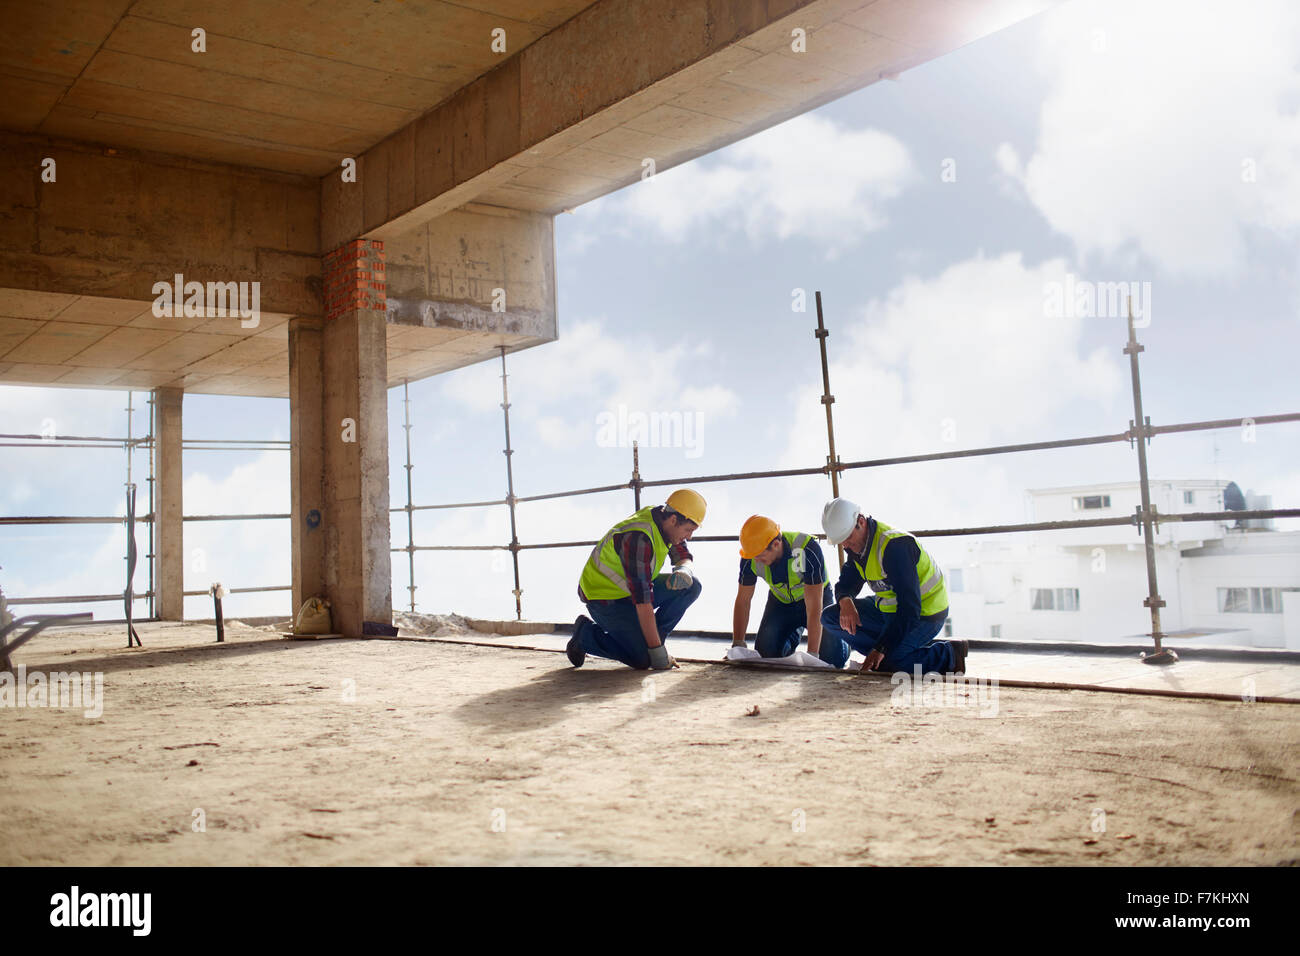 Construction workers working at highrise construction site - Stock Image